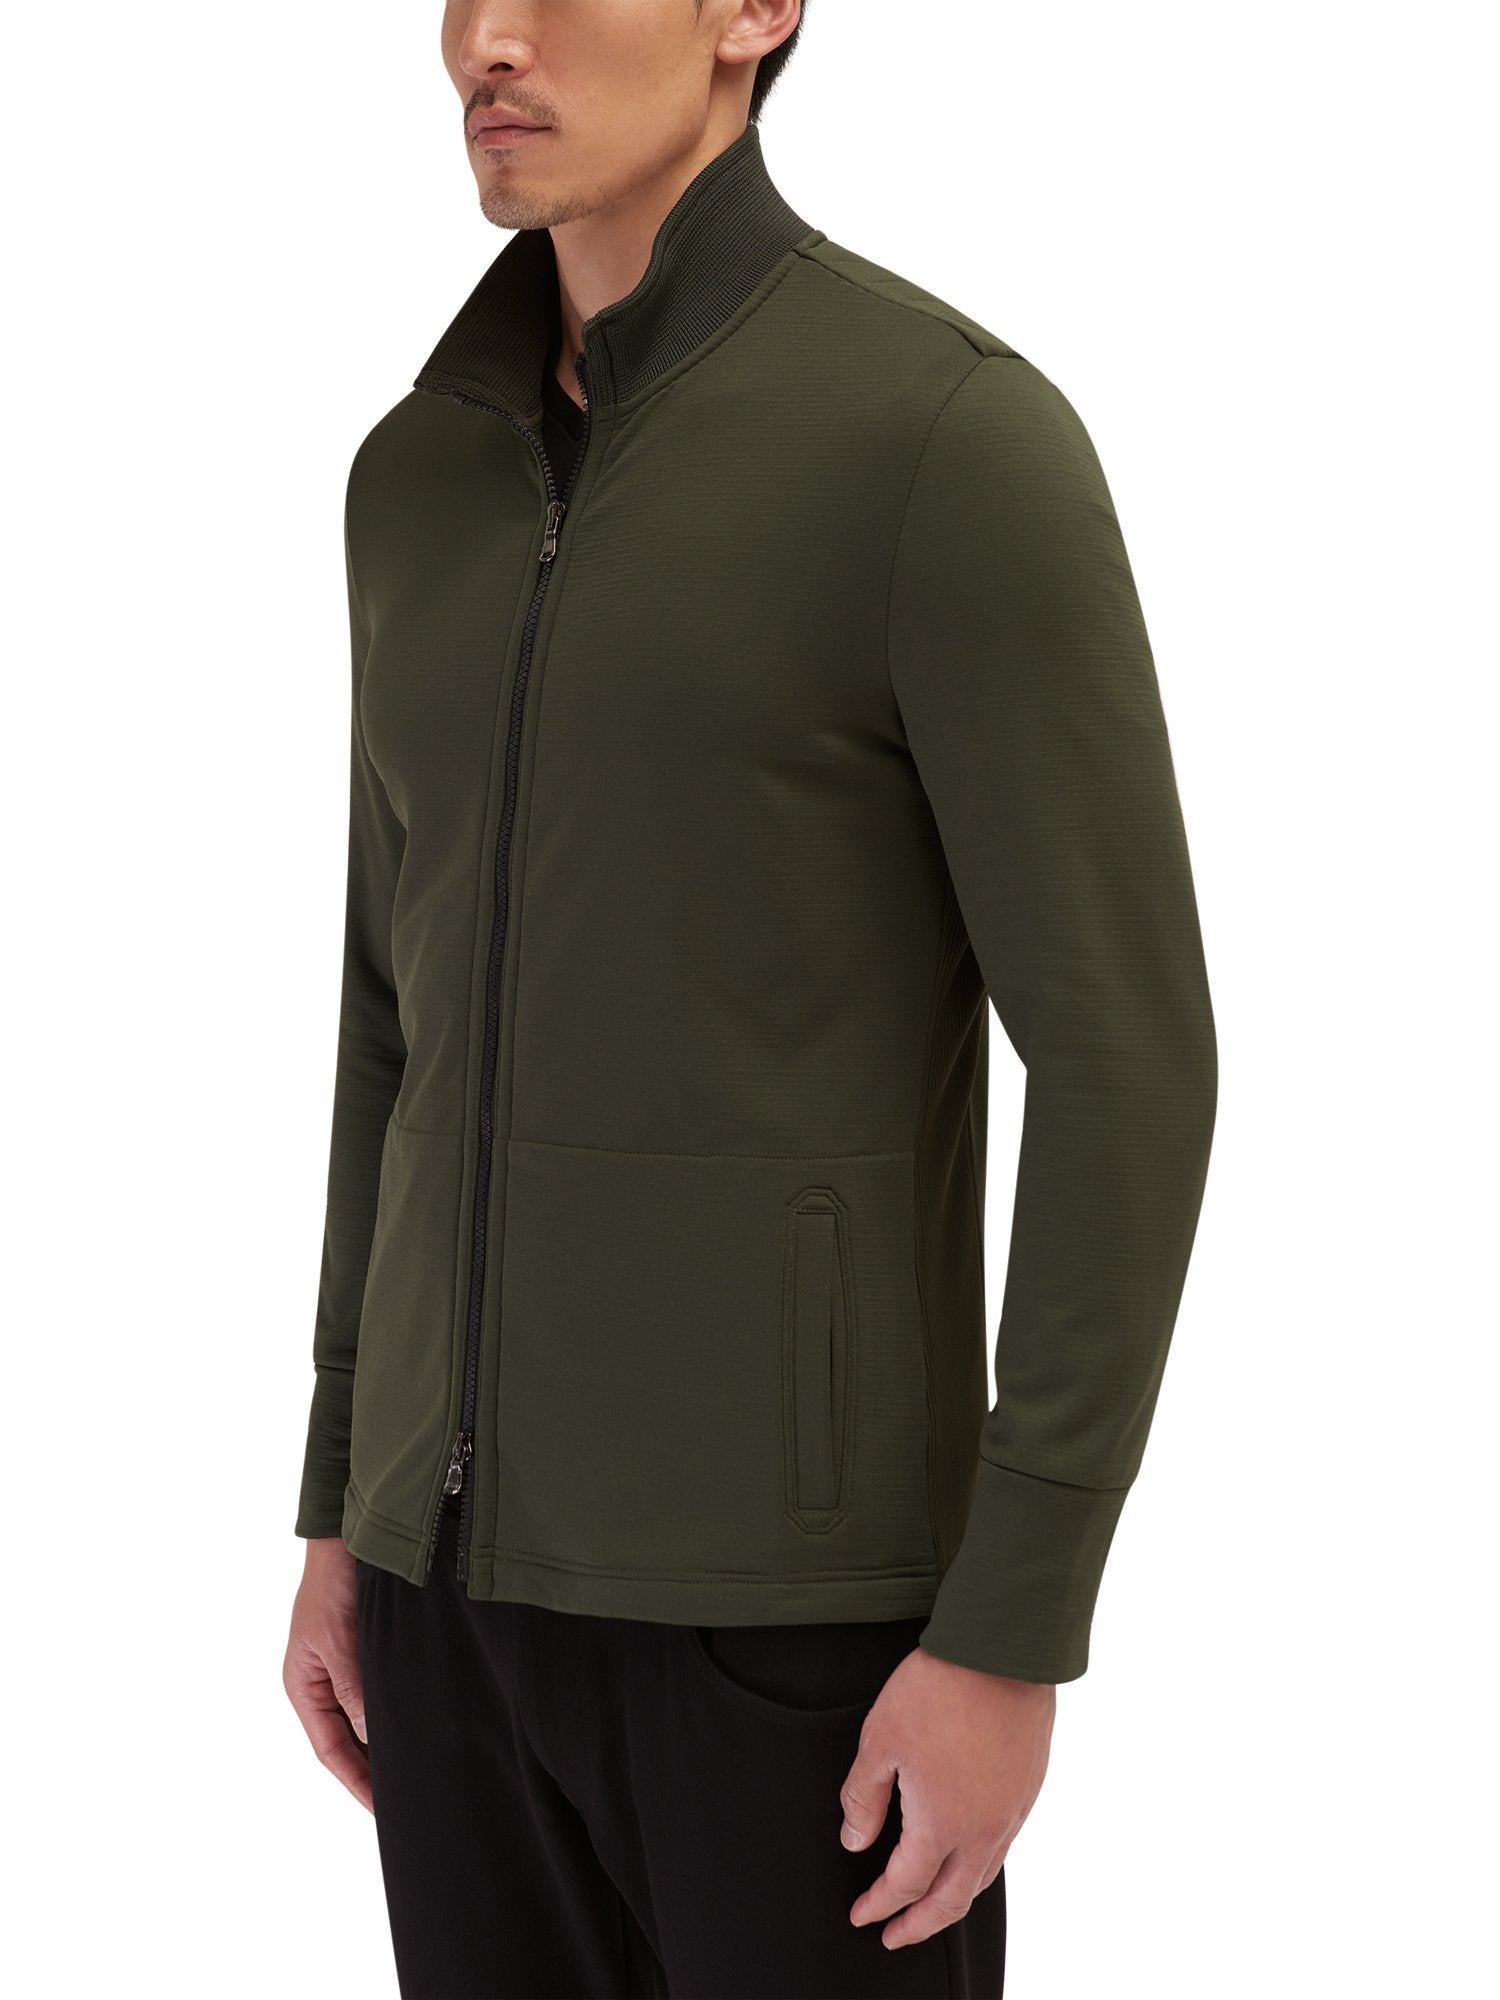 Pulse Zip Front - EFM Menswear - Engineered For Motion